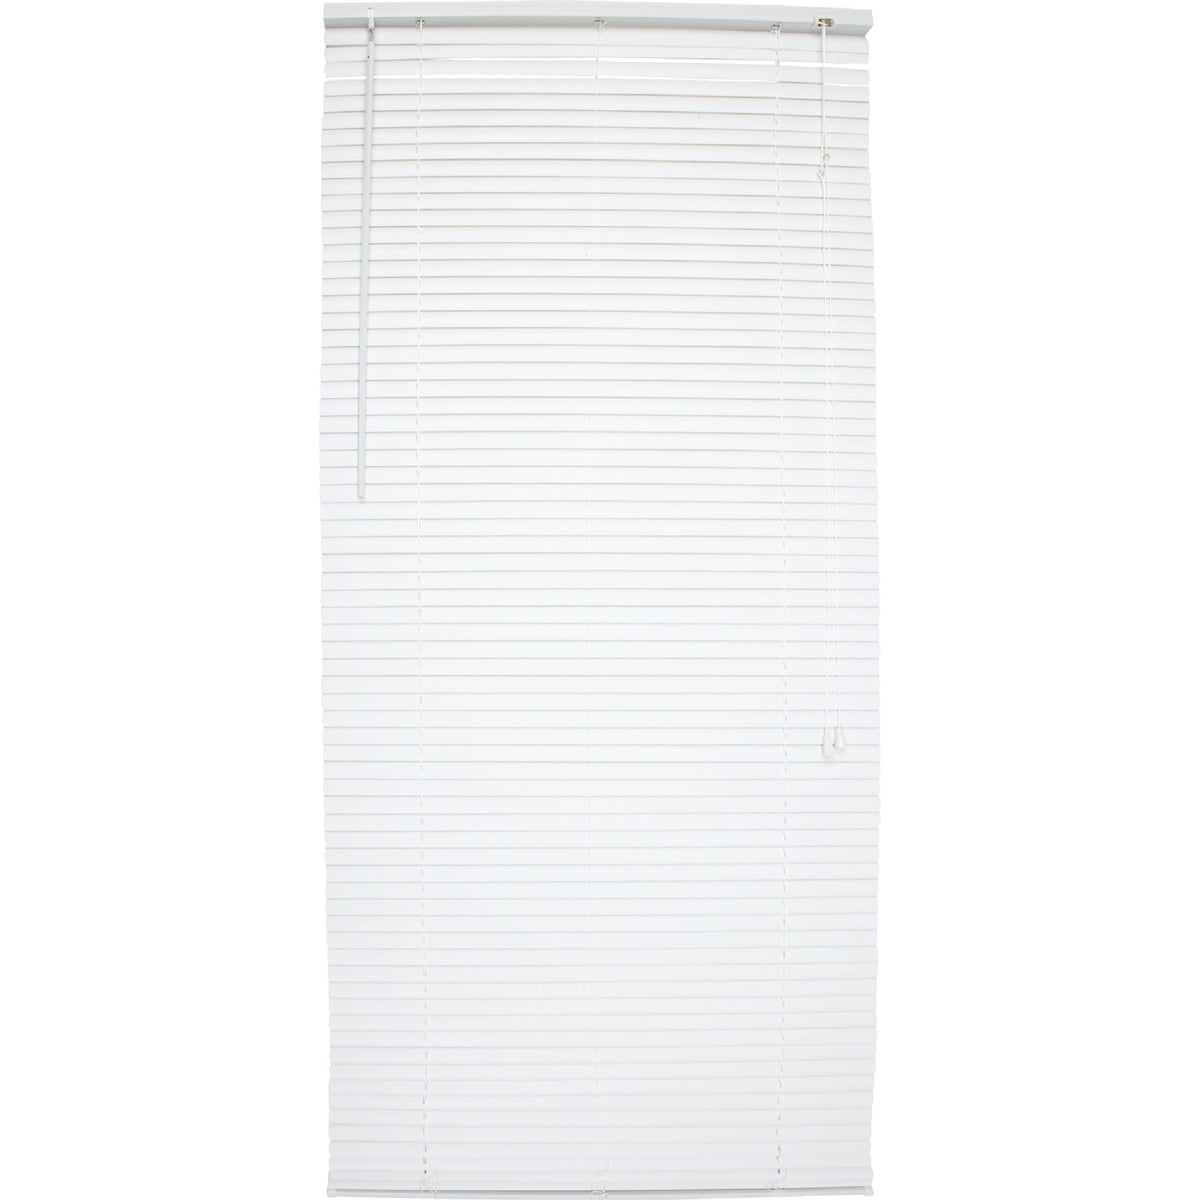 46X72 WHITE MINI BLIND - 615882 by Lotus Wind Incom